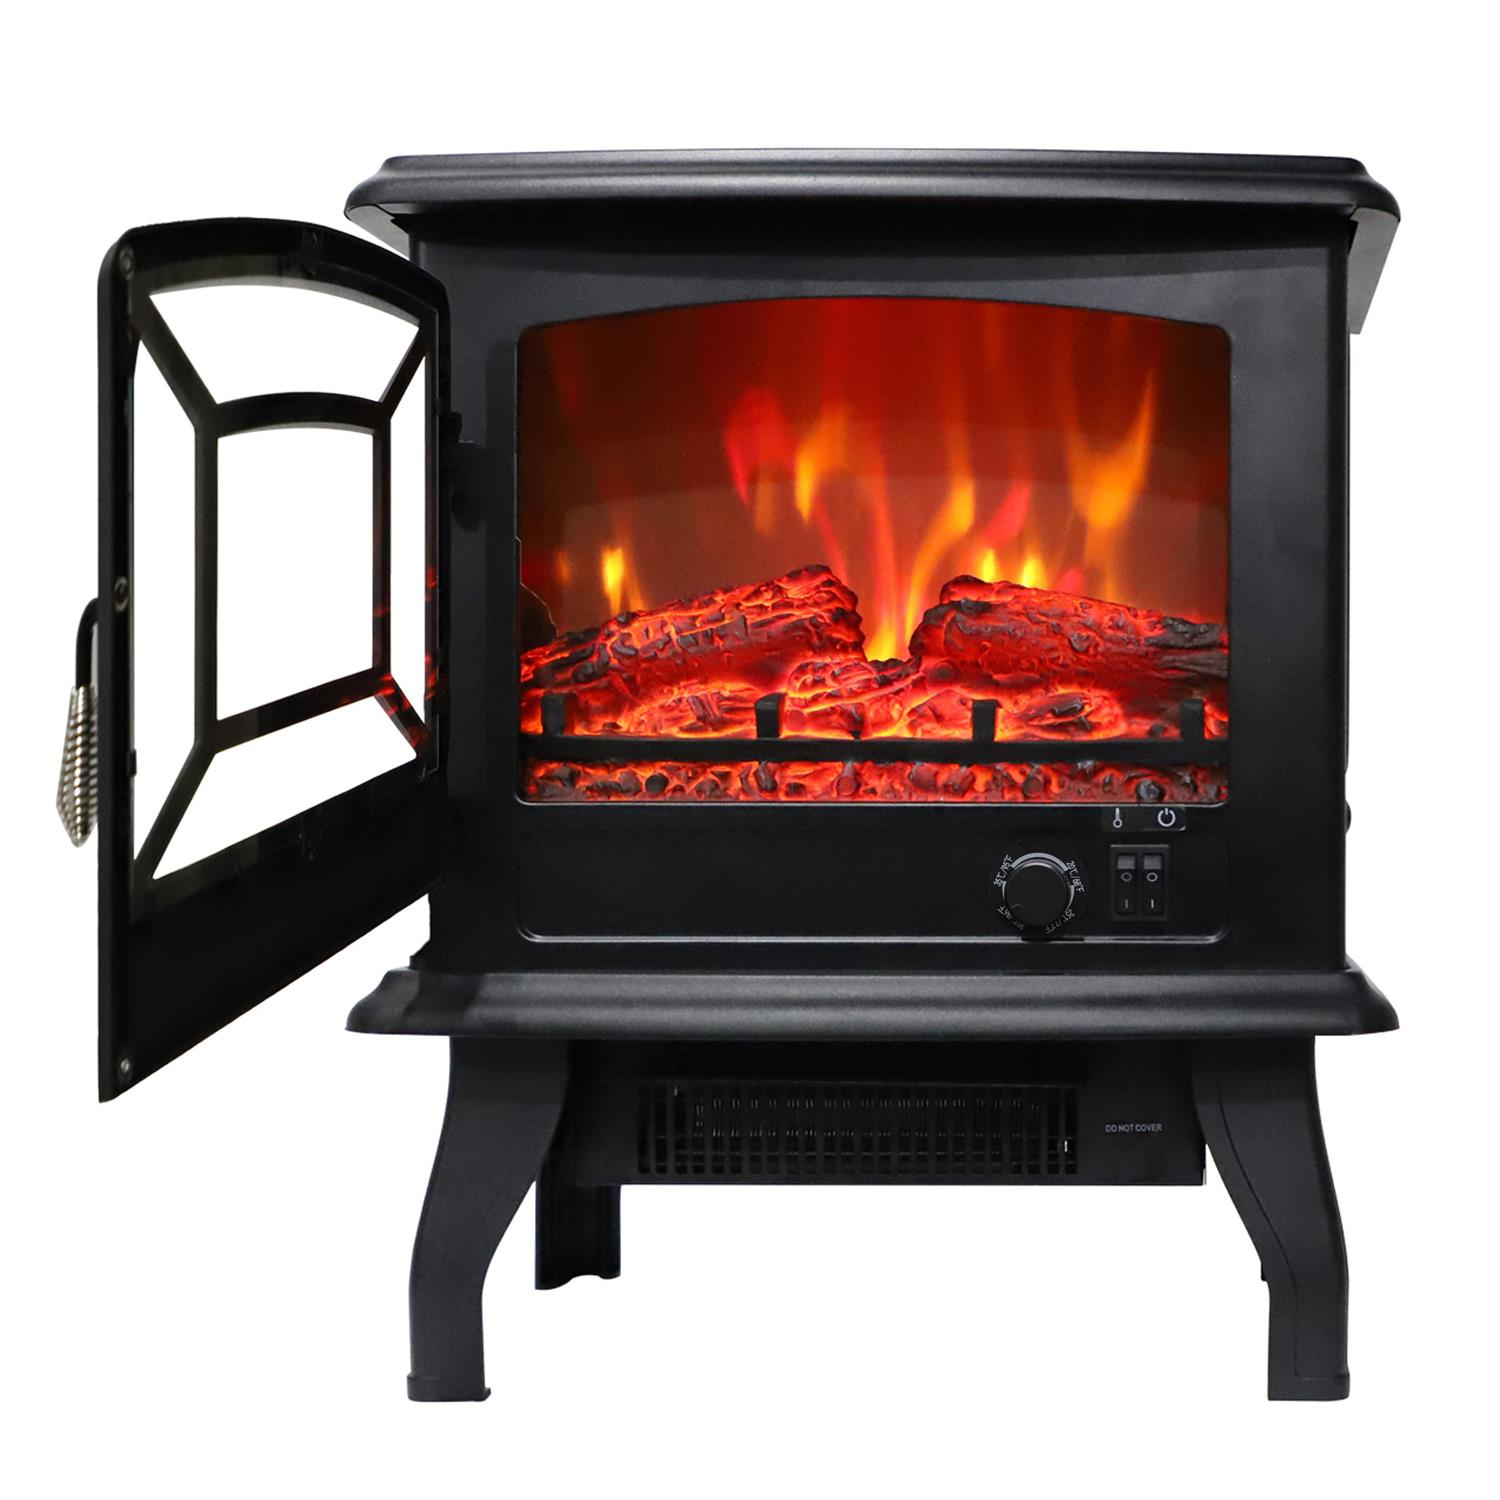 Ktaxon 1400w Small Electric Fireplace Indoor Free Standing Stove Heater Fire Flame Stove Adjustable Walmart Com Walmart Com